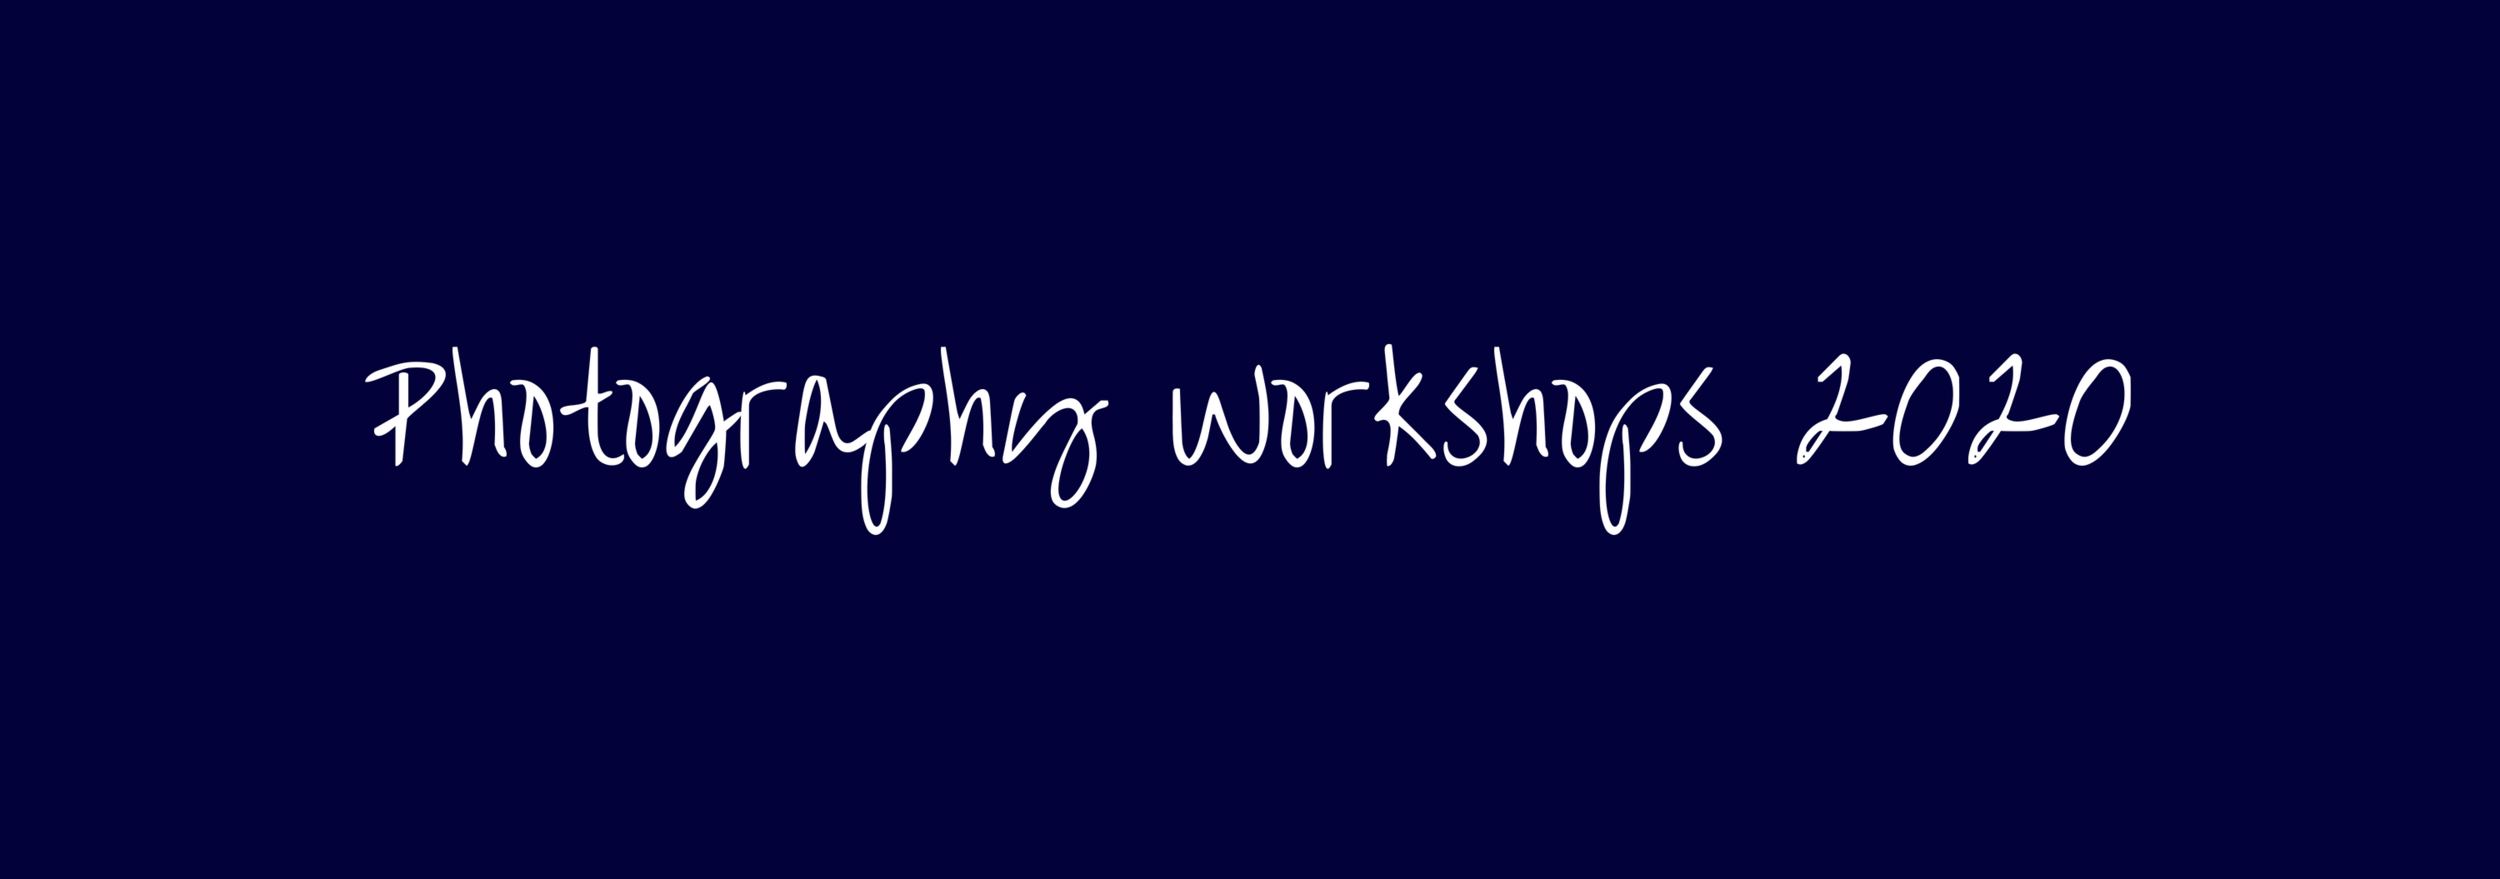 North of 49 Photography Workshops 2020